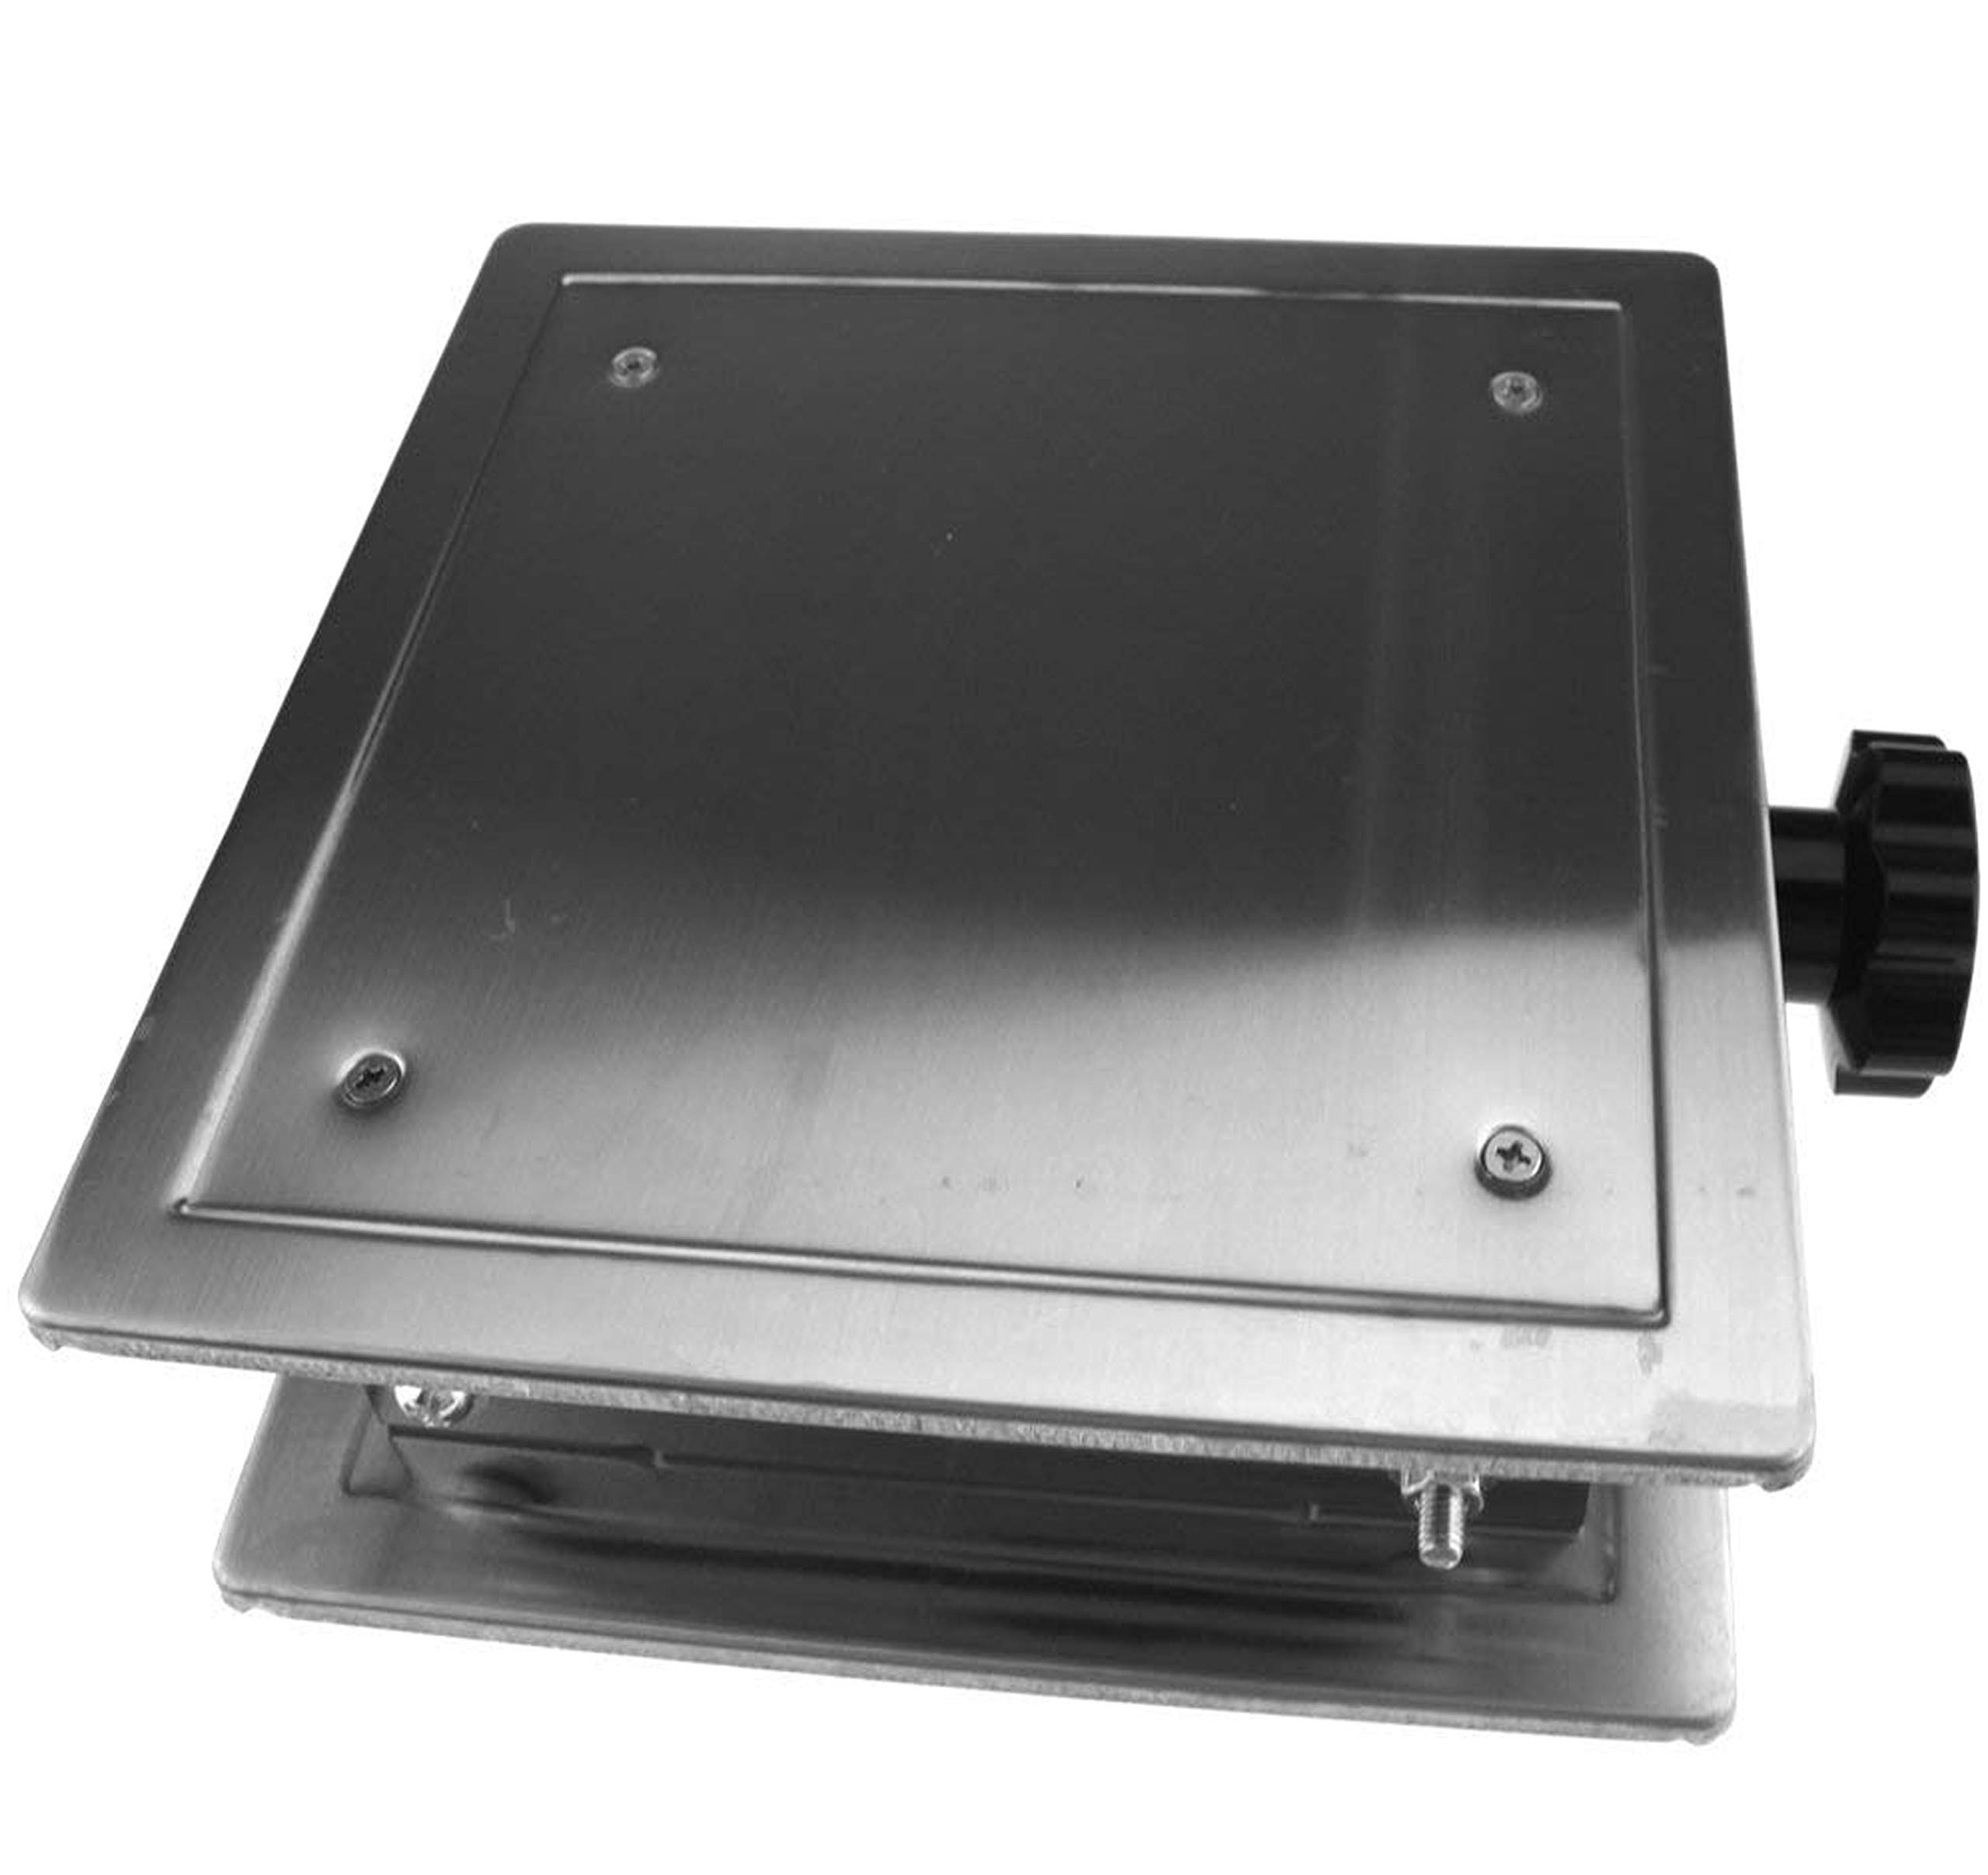 OESS Lift Table Lab Stand Lifter Scientific Scissor Lifting Jack Platform 8''X 8'' Stainless Steel